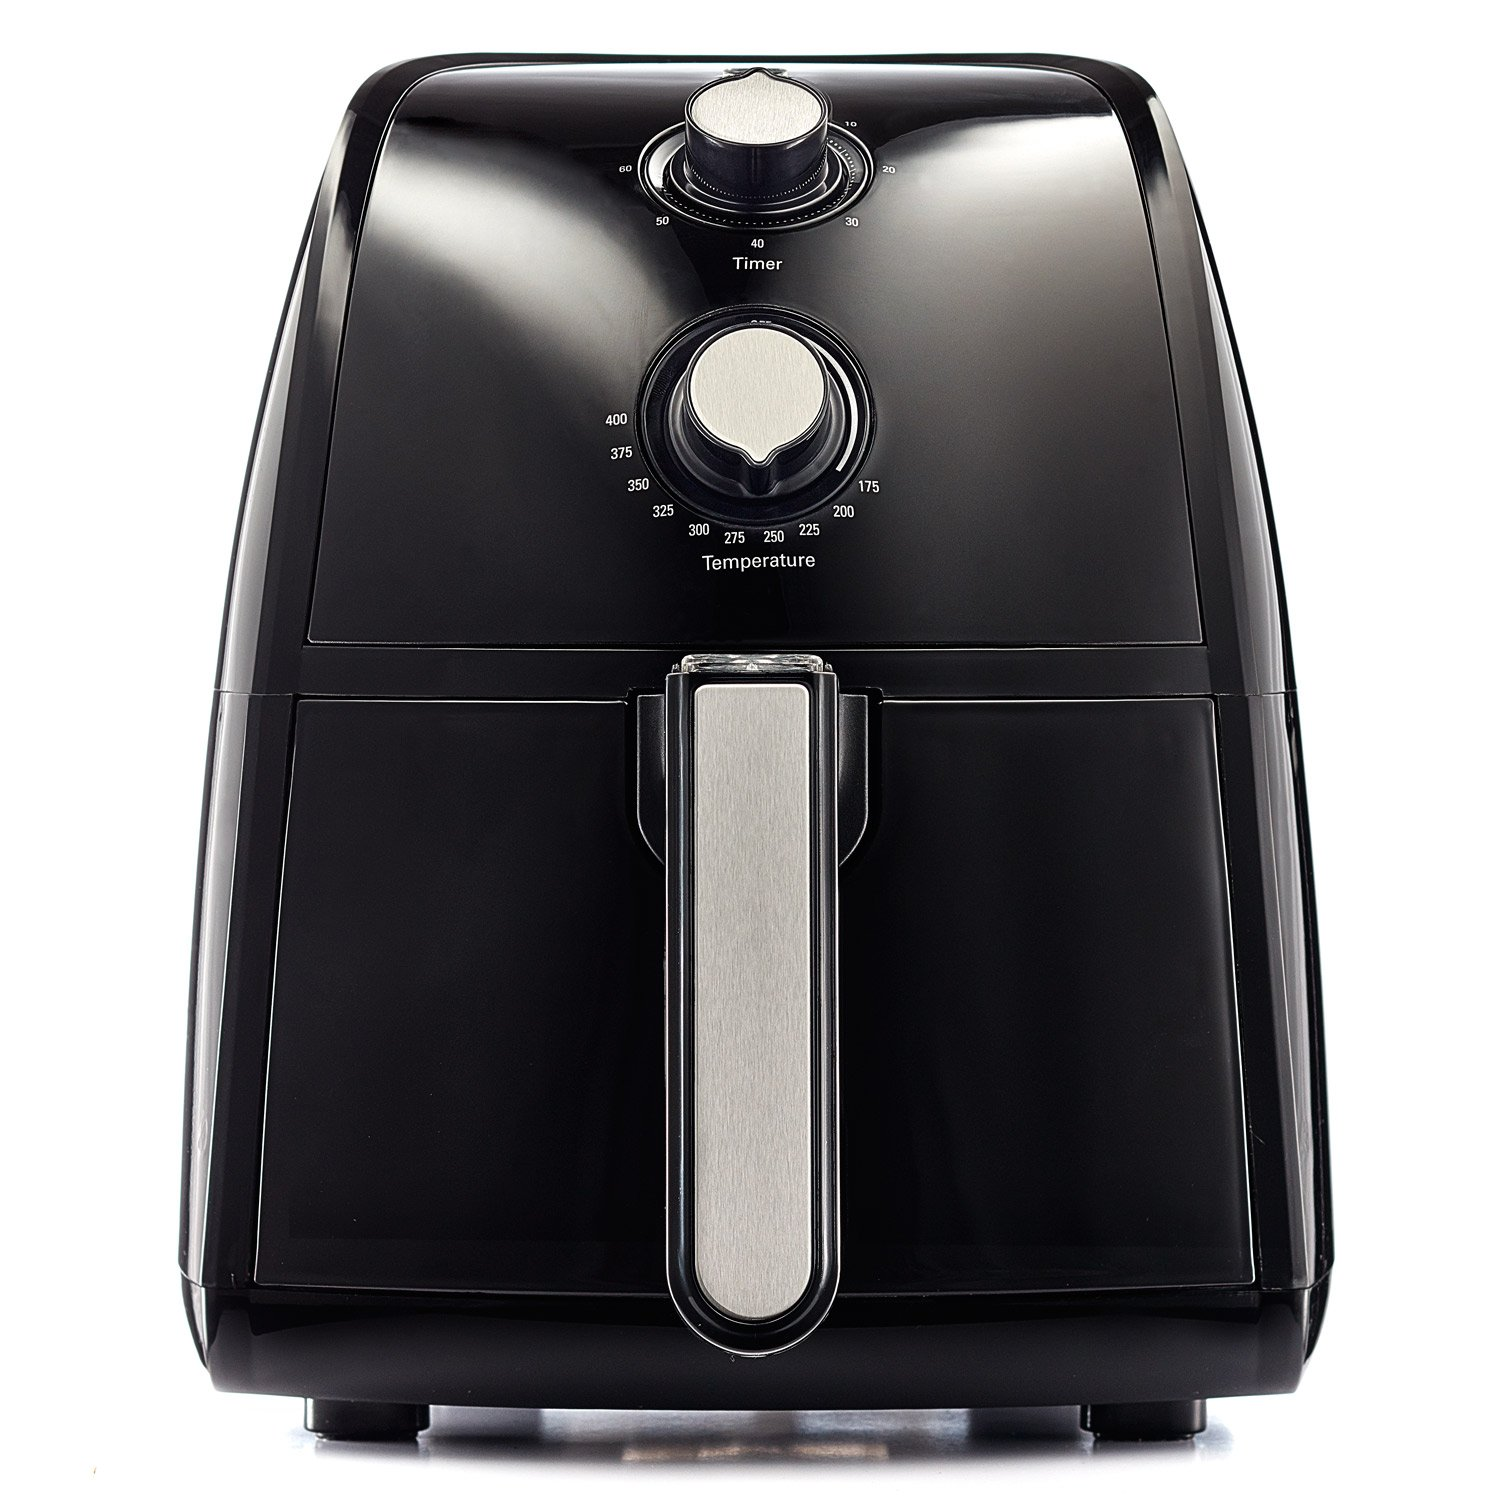 BELLA 14538 2.6 Quart Air Convection Fryer, Black by BELLA